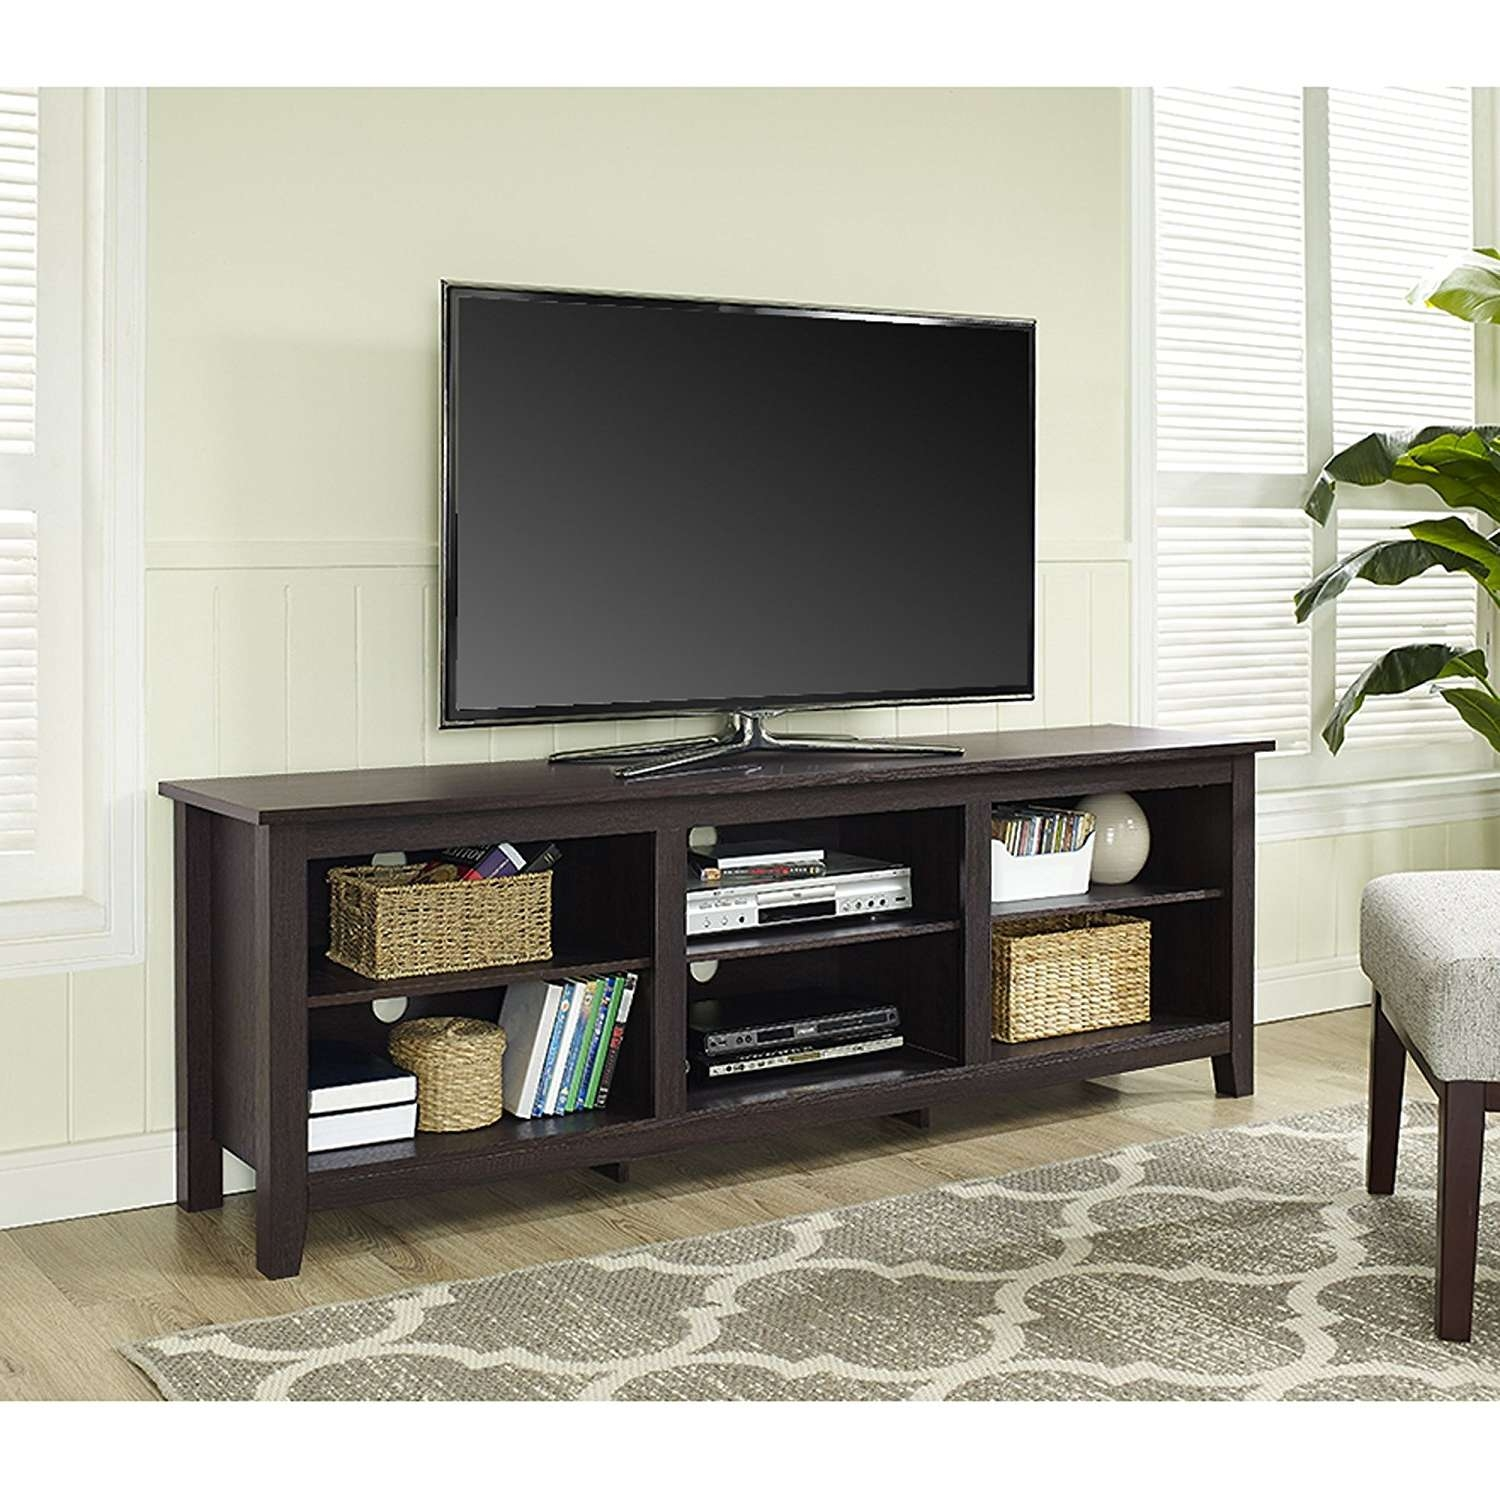 Bedroom Design : Magnificent Corner Tv Stand With Mount Modern Tv Regarding Modern Tv Stands With Mount (View 1 of 15)